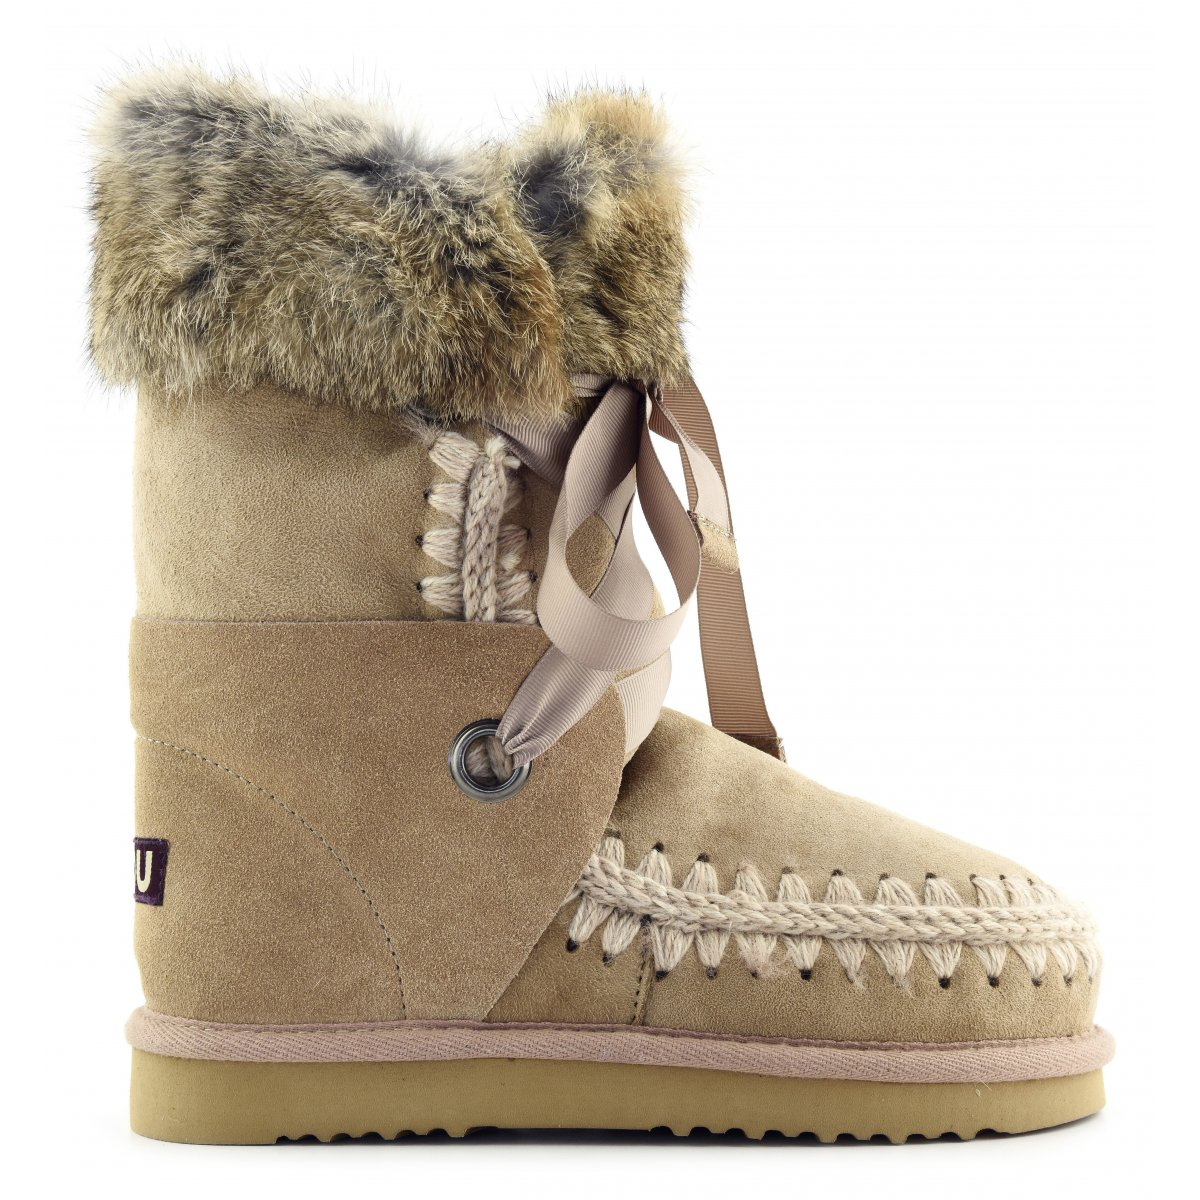 eskimo lace and fur ankle boots mou women fall winter